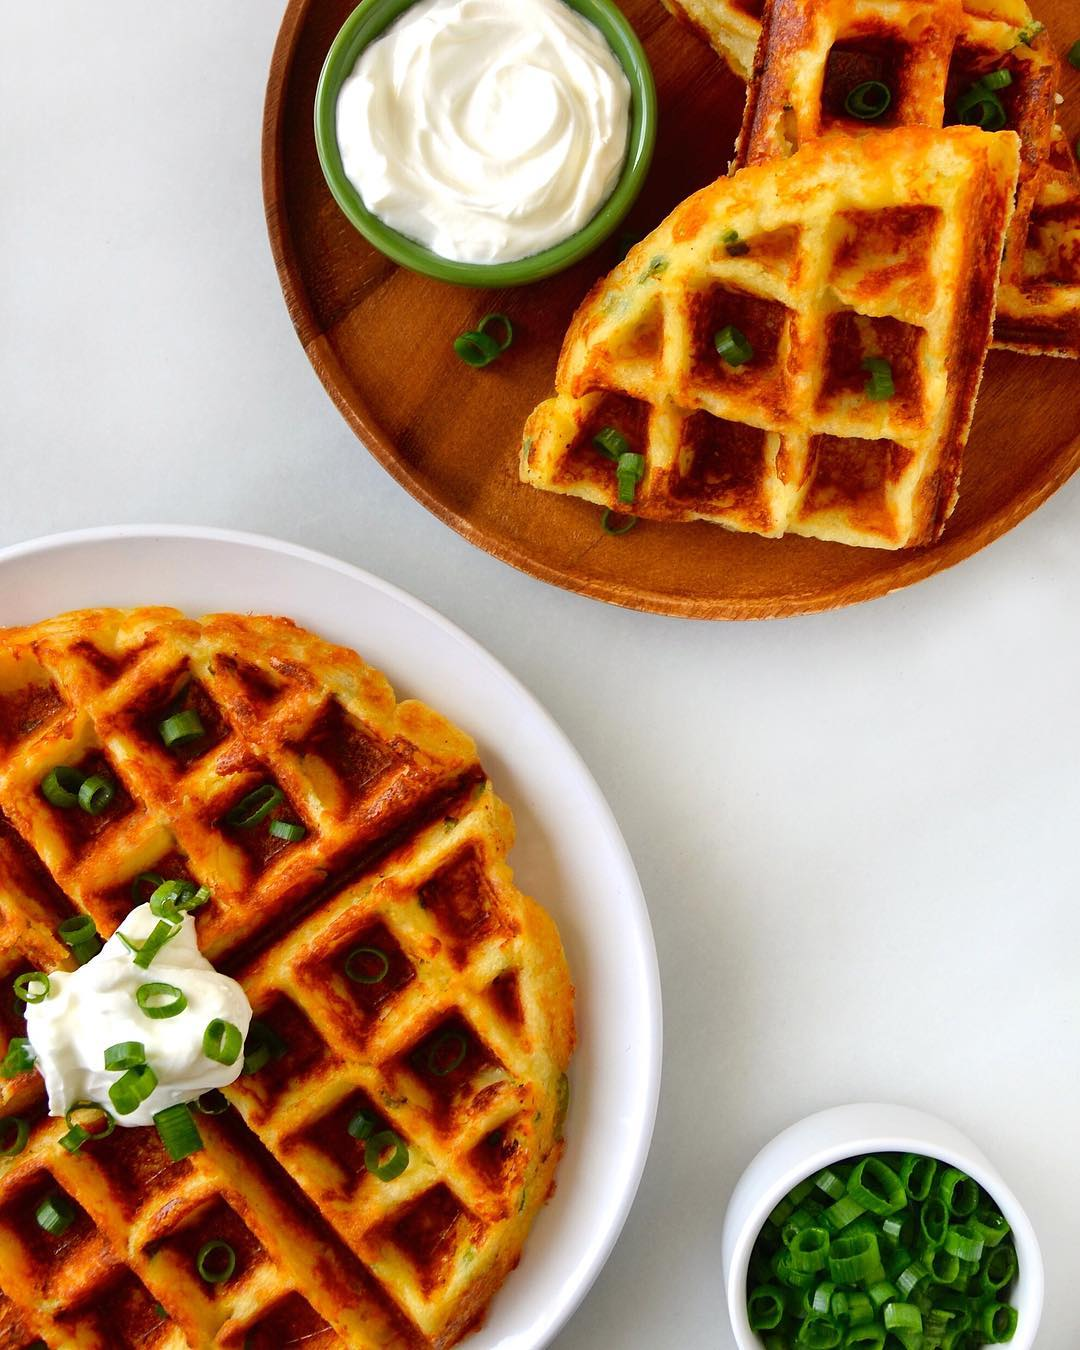 gaufre brunch new york.jpg